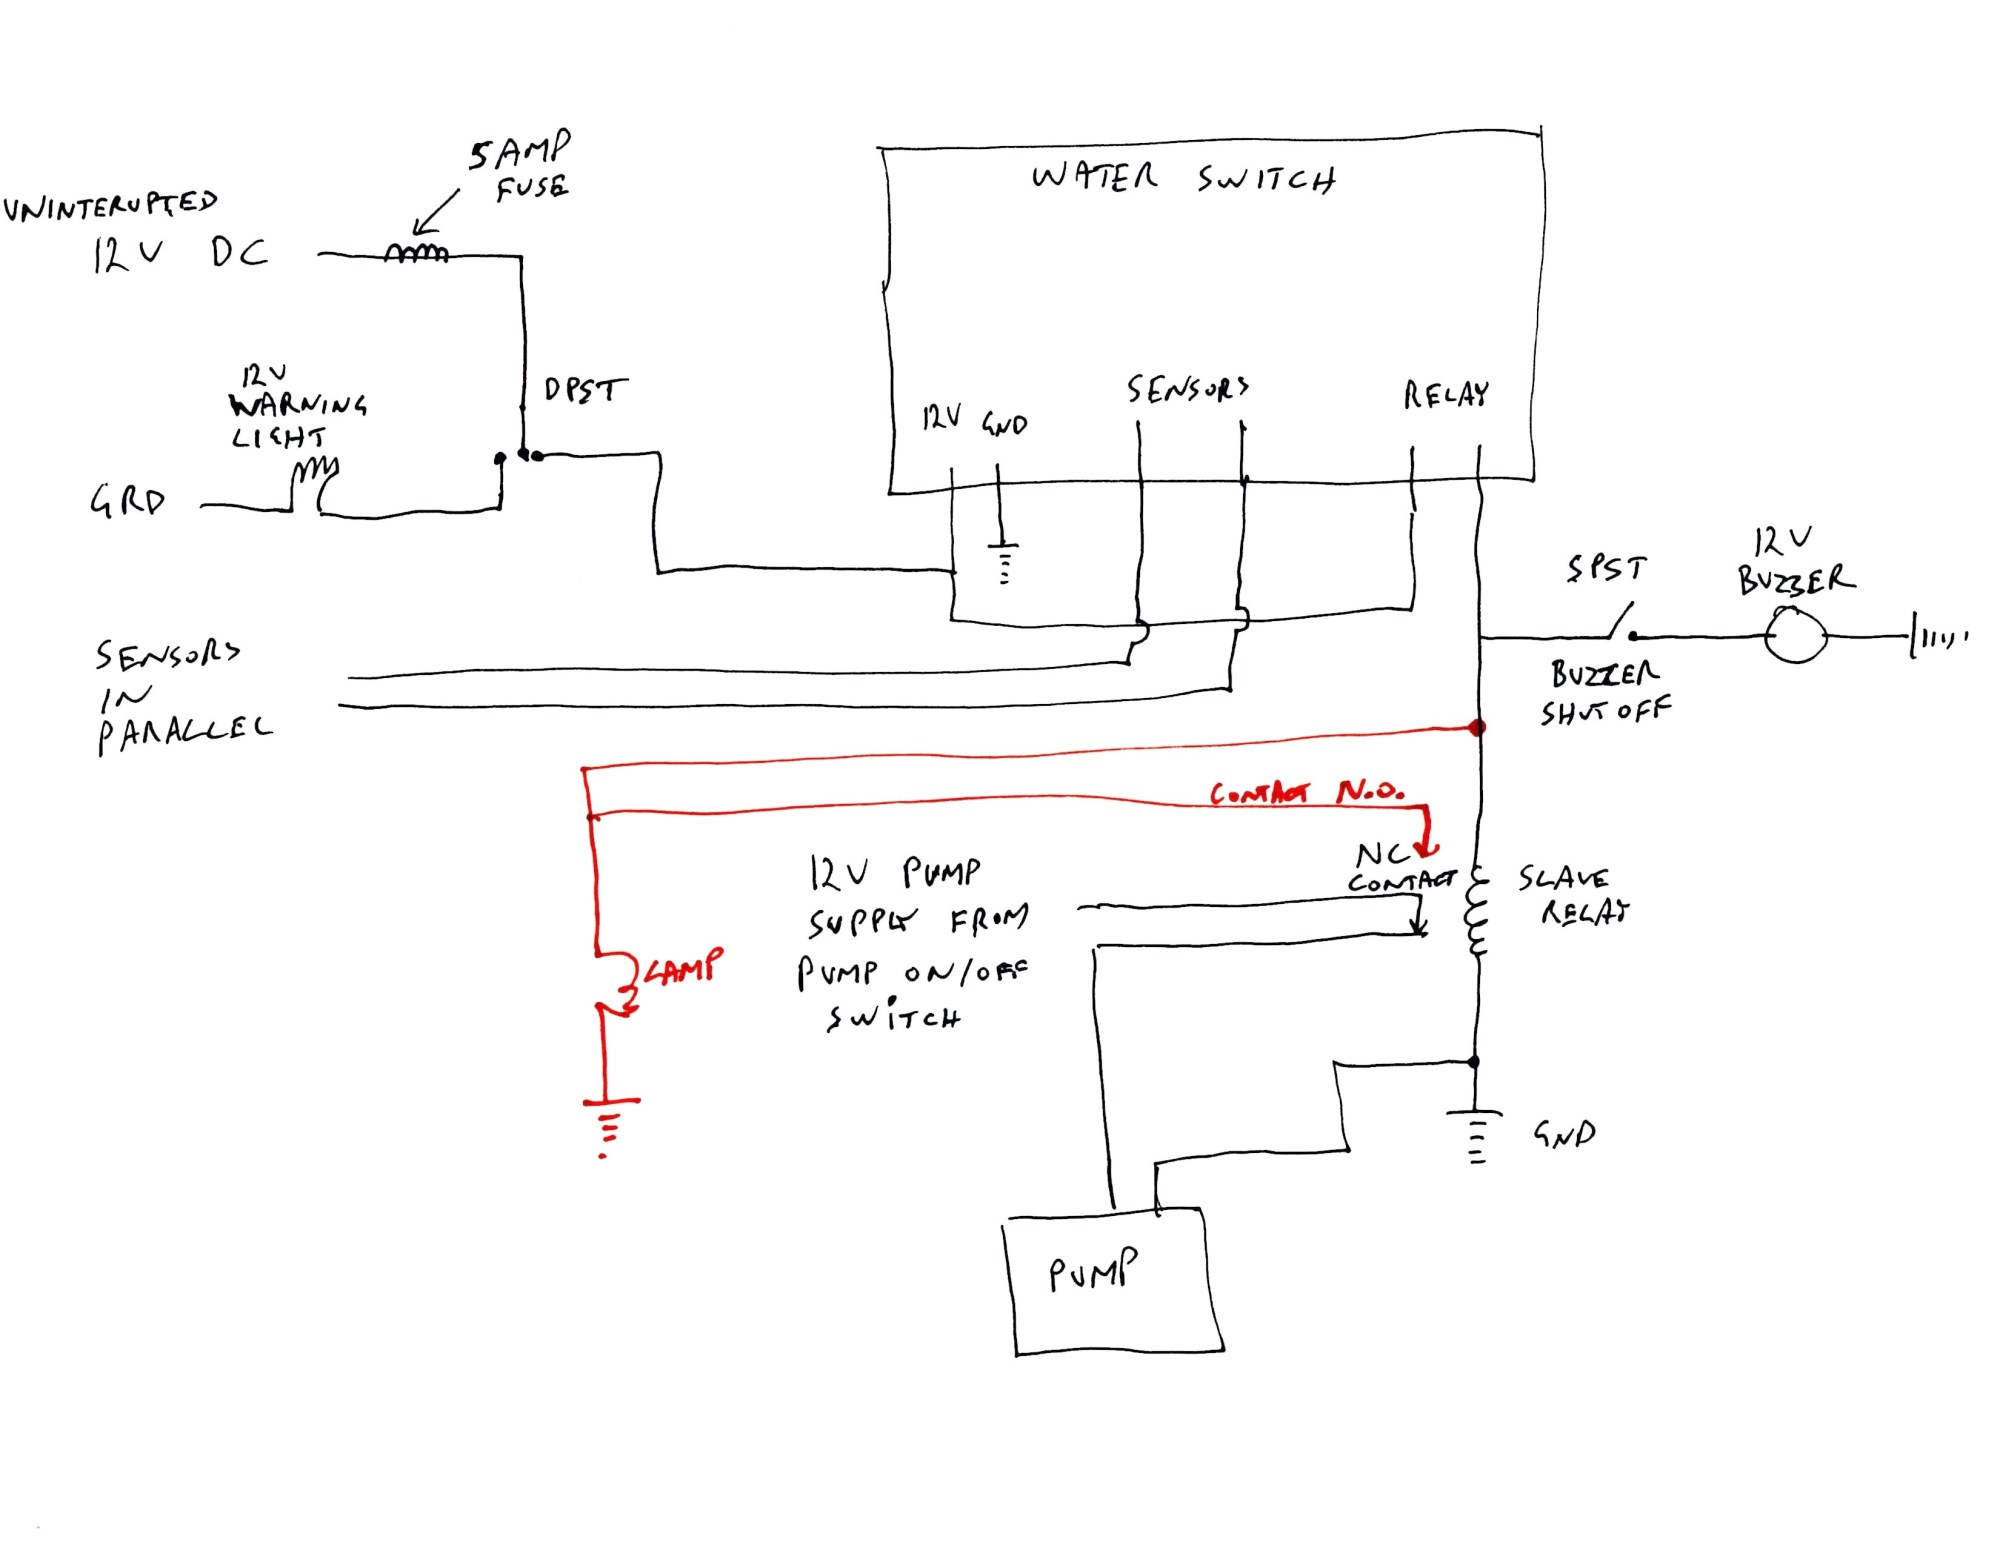 hight resolution of 1999 jayco wiring diagram wiring diagram user jayco wiring diagram with esc 1999 jayco wiring diagram